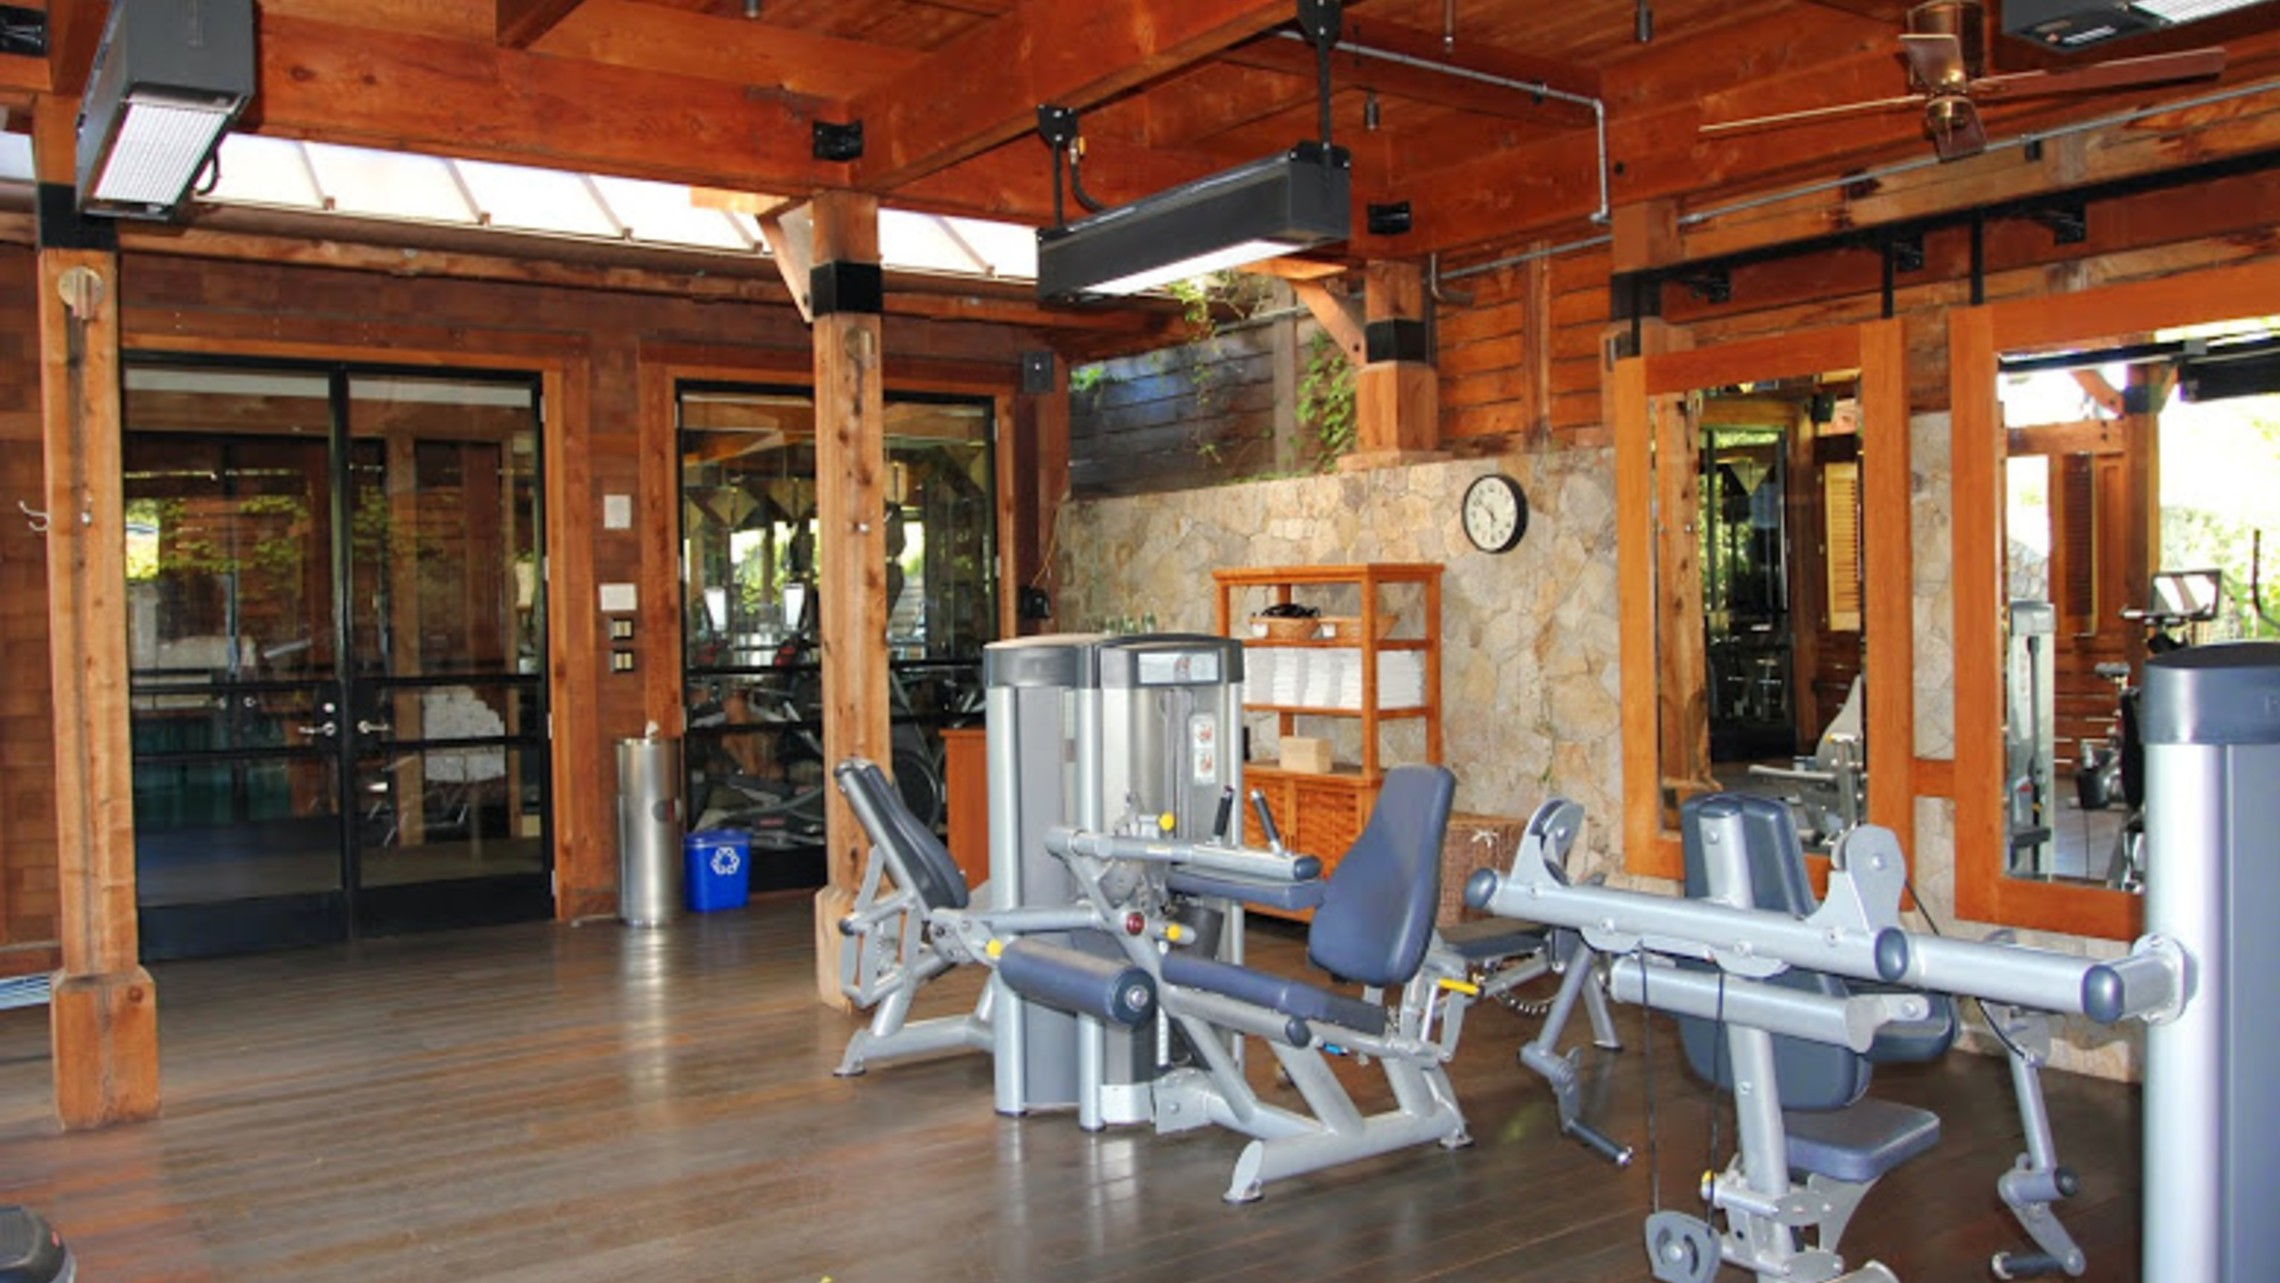 Calistoga Ranch Gym 1